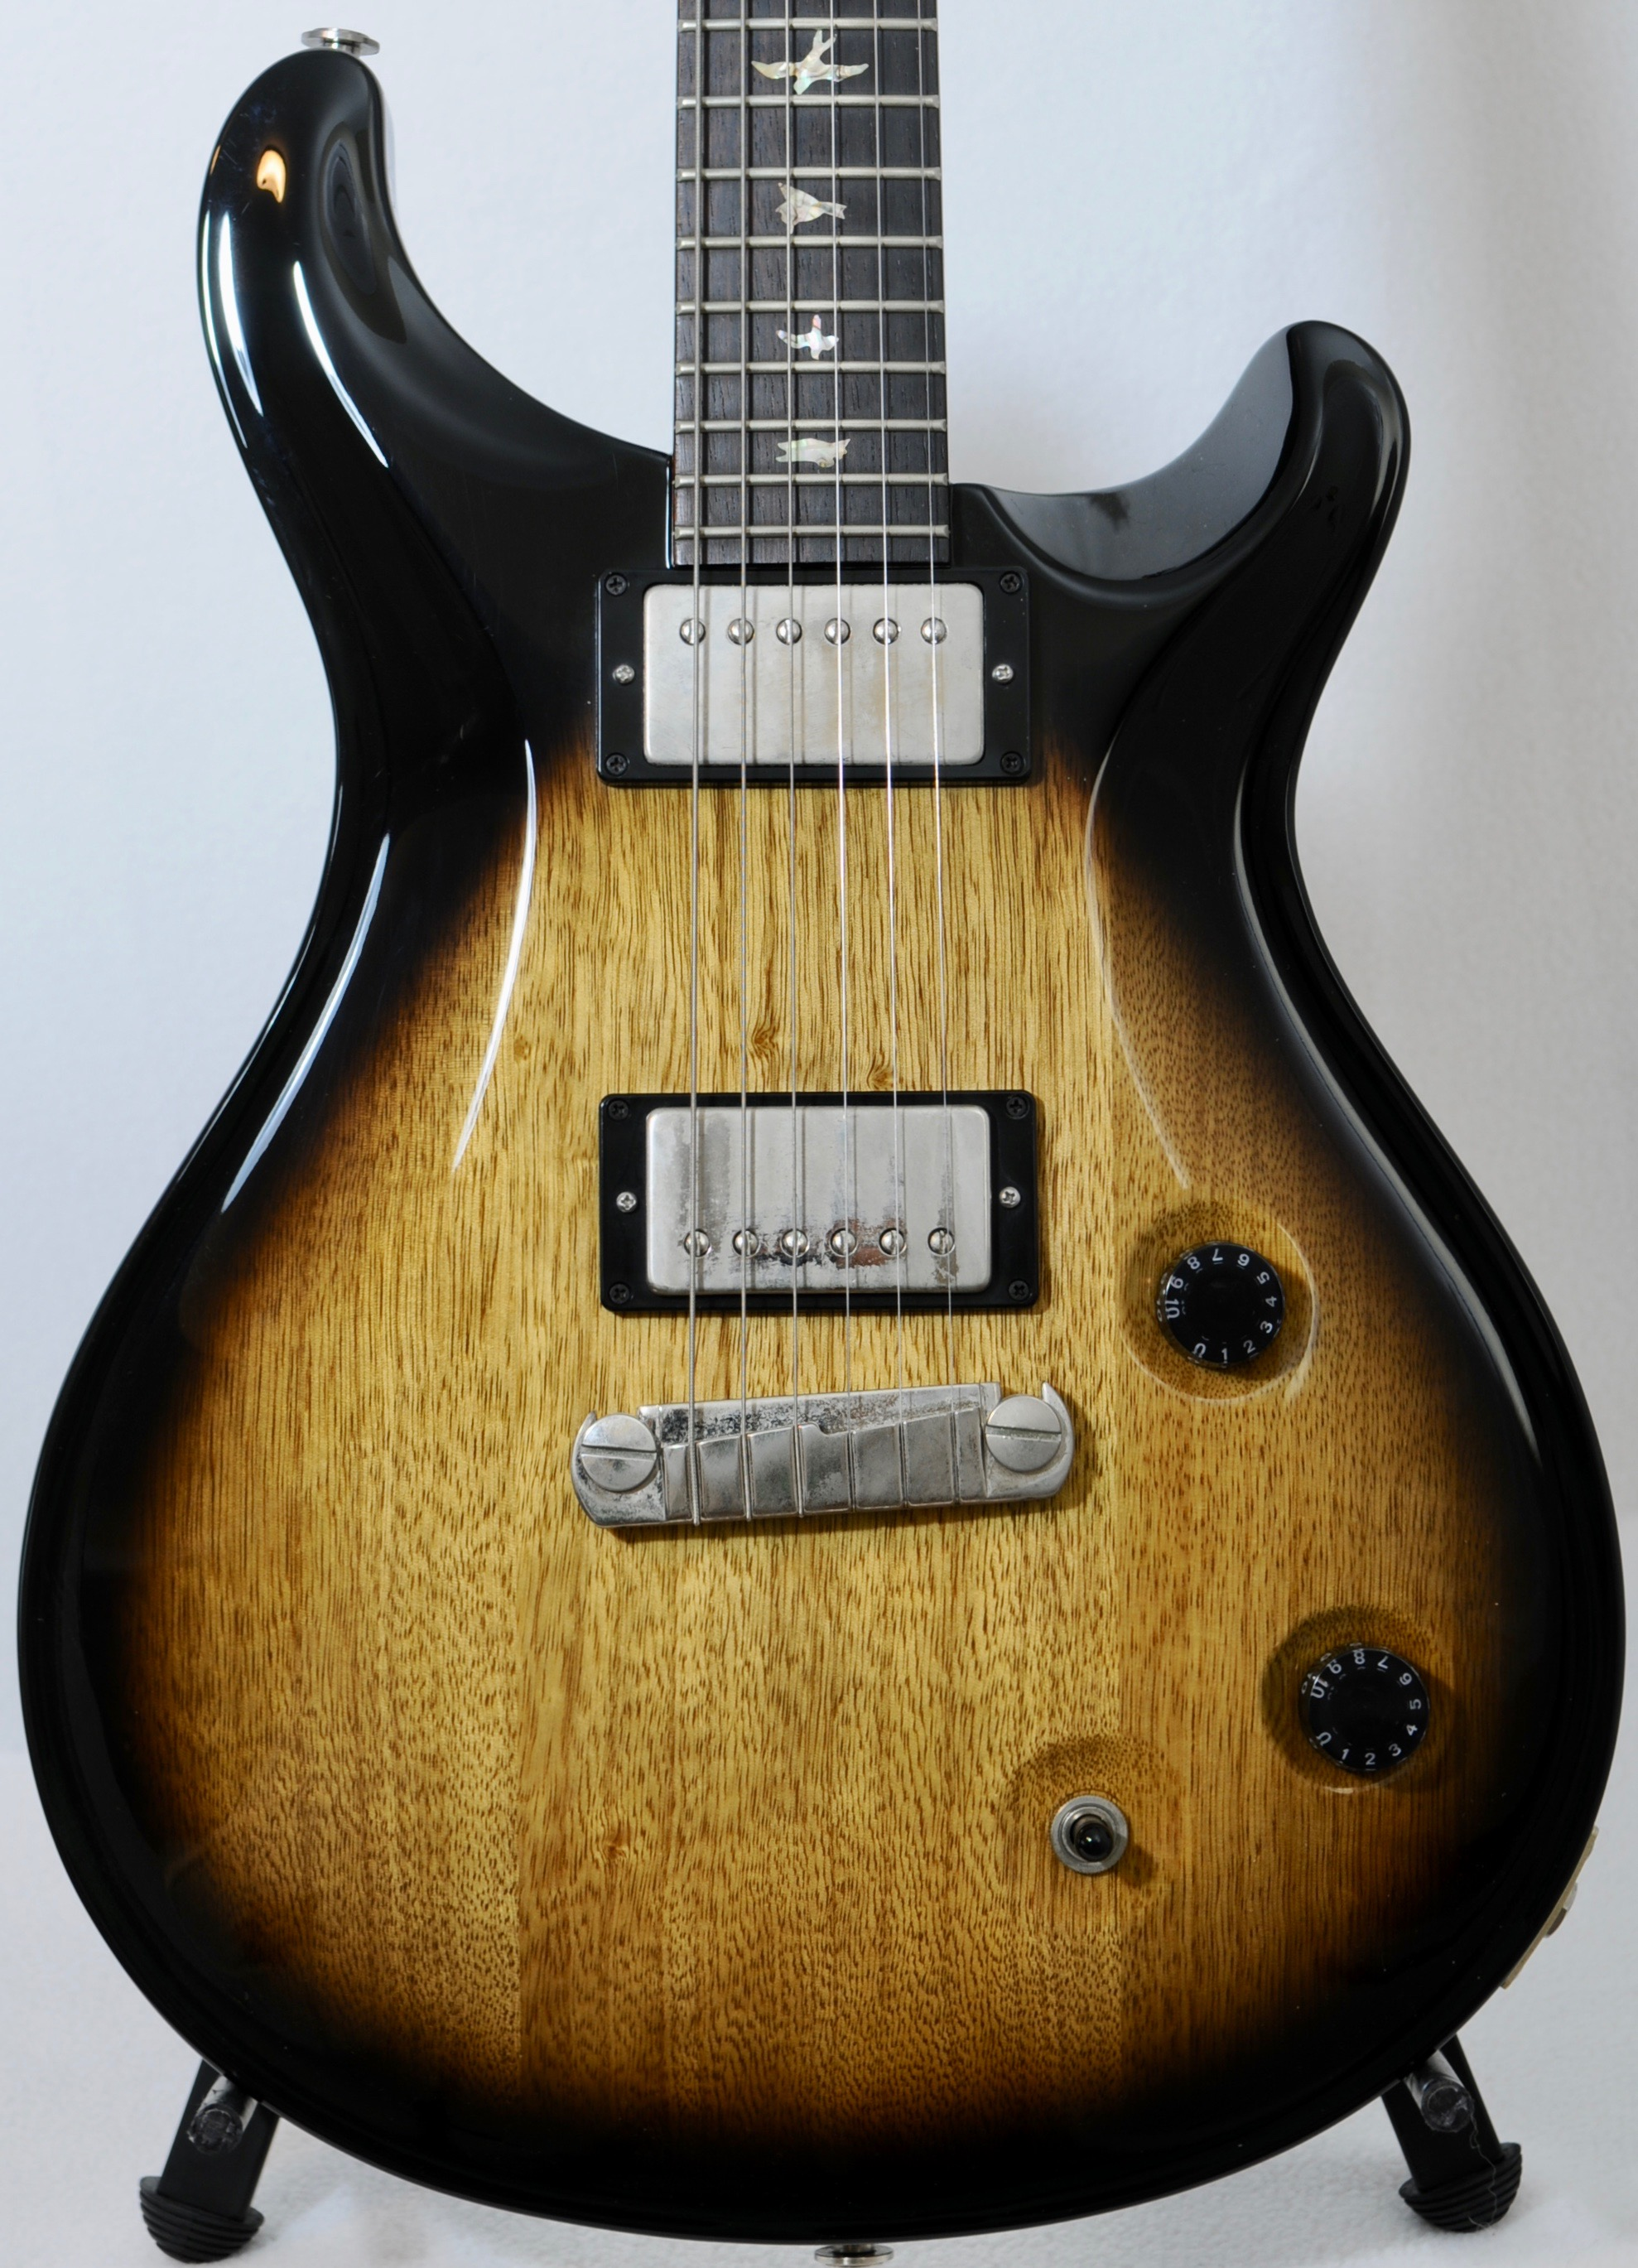 PRS McCarty Brazilian RW / Korina Ltd Edition 6lb-12oz